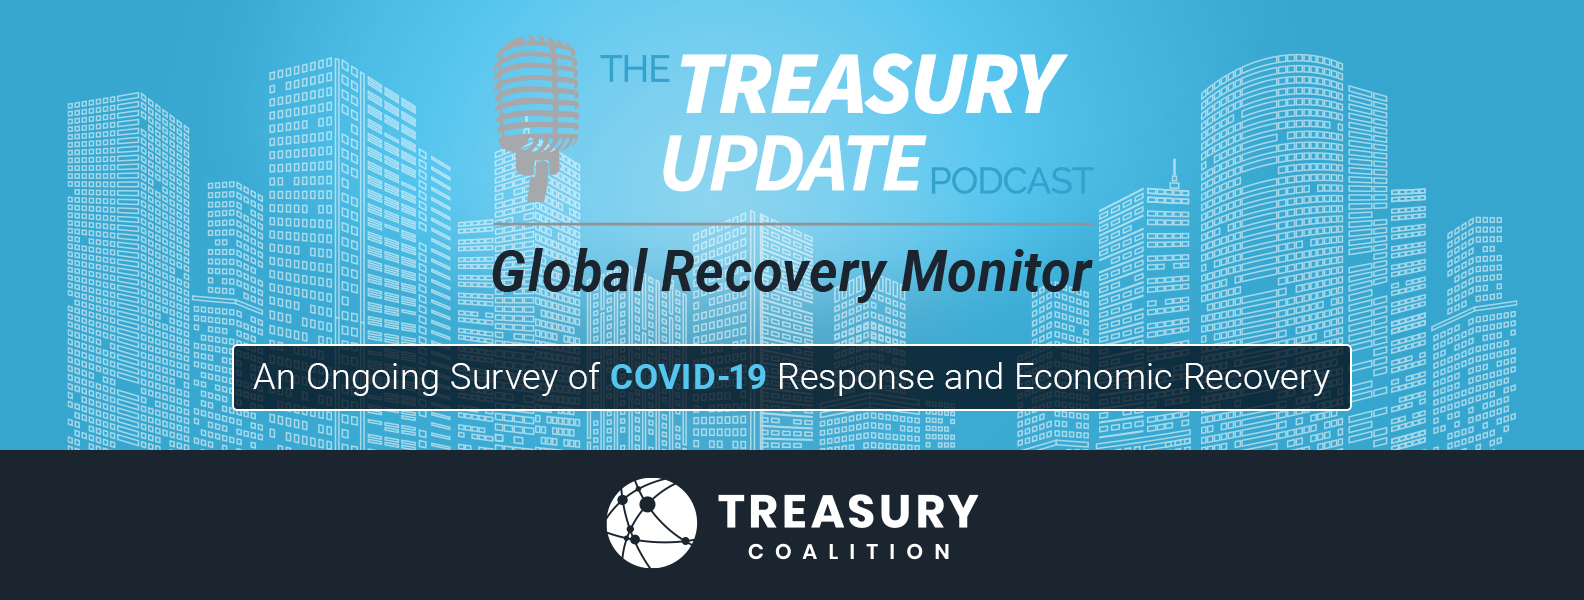 Global Recovery Monitor Podcast Series